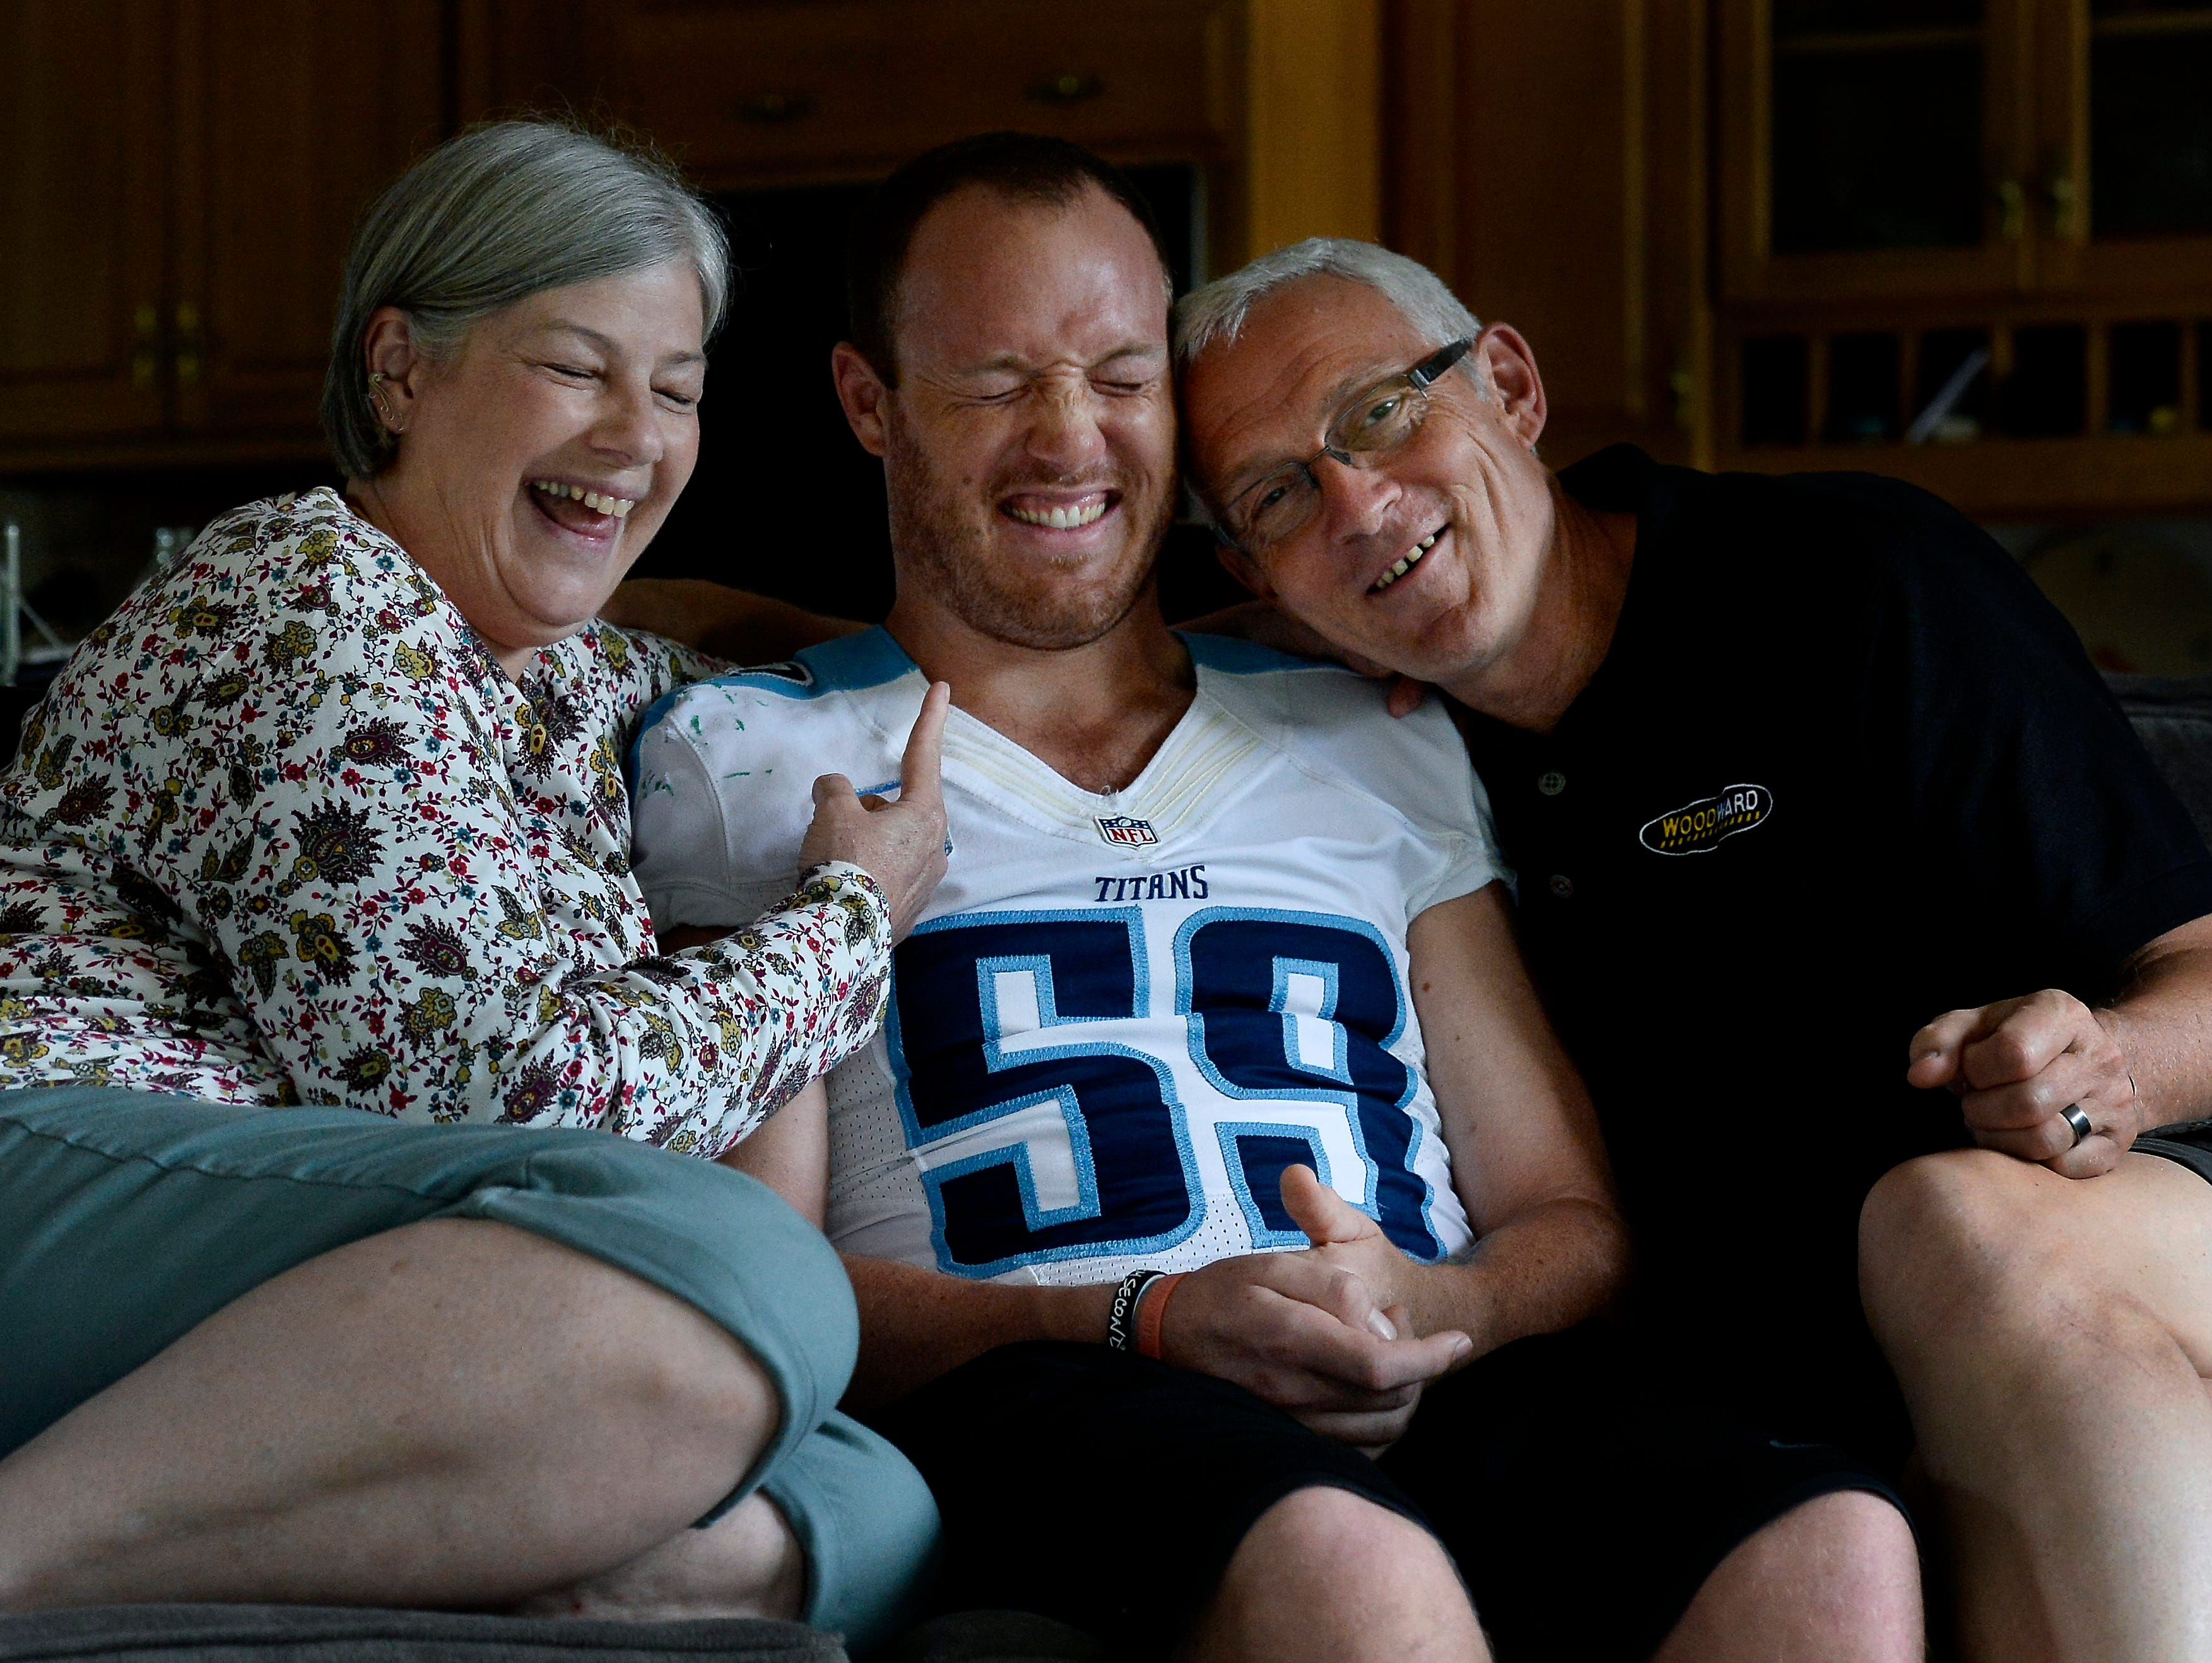 Tim Shaw jokes with his parents, Sharon and John Shaw, on Tuesday in Nashville Tenn.